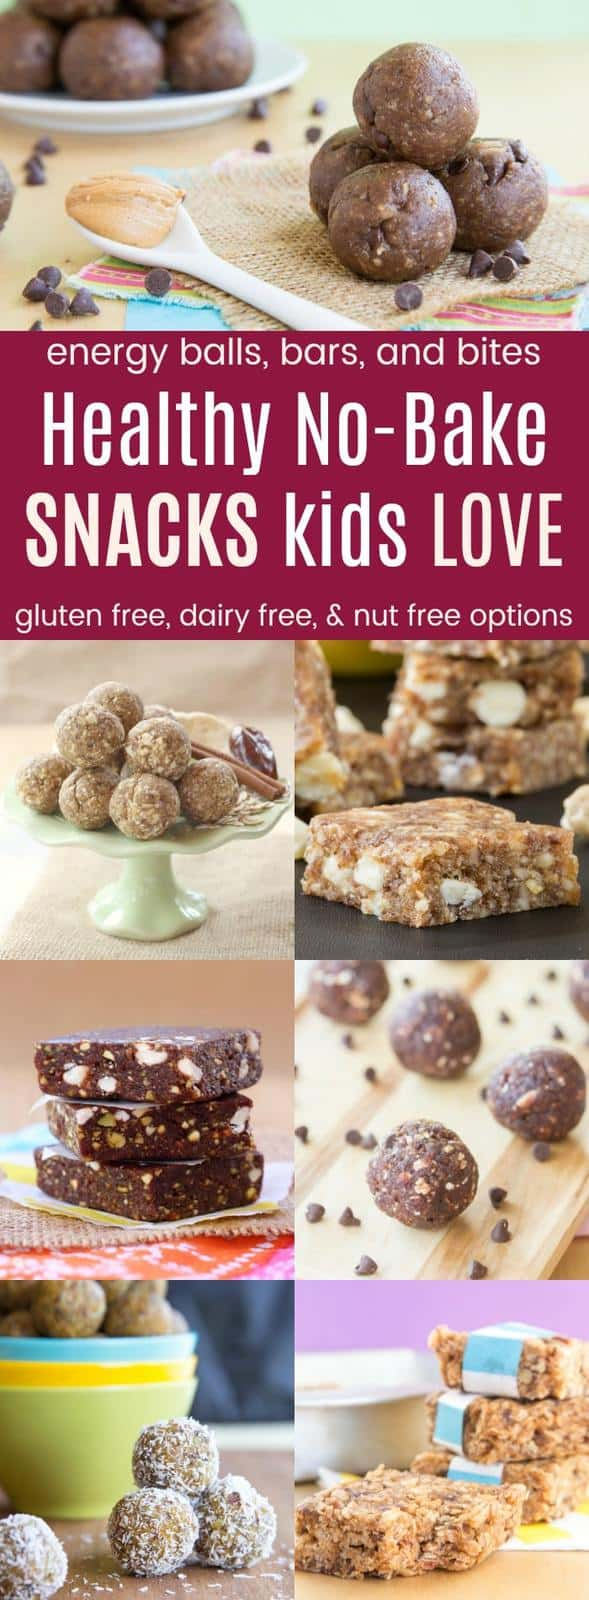 Healthy No-Bake Snacks Kids Love in a collage